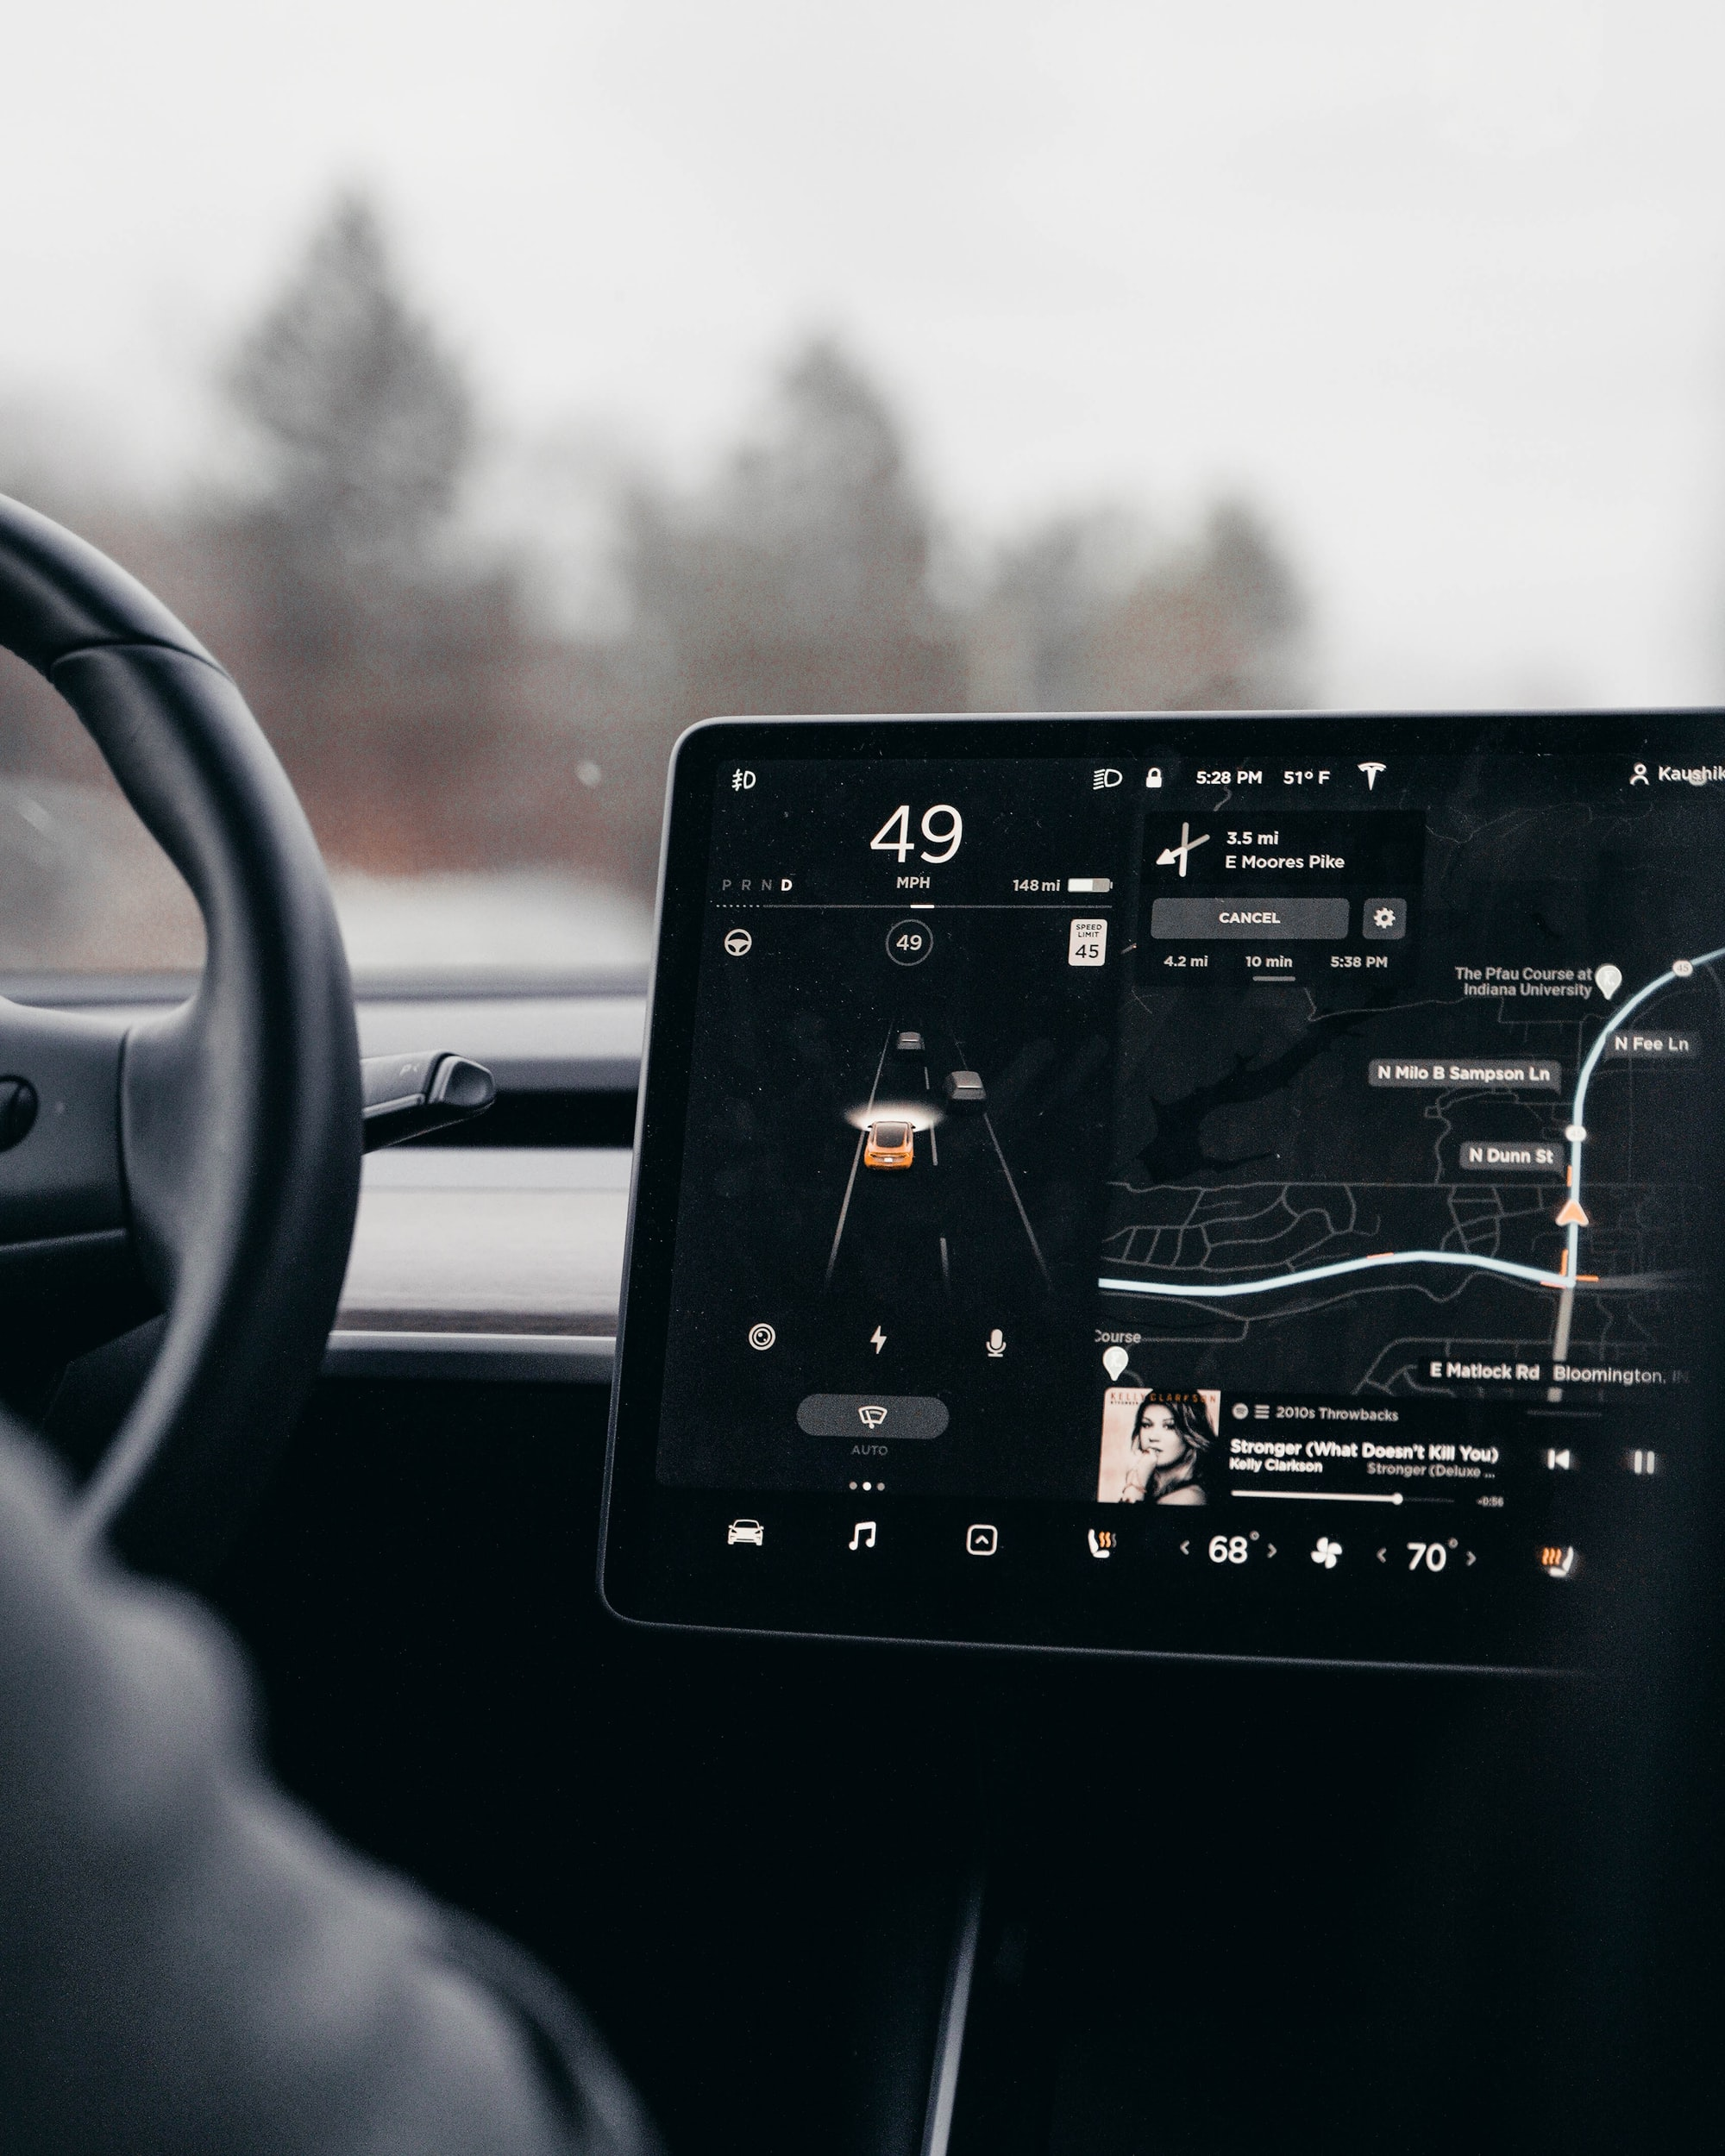 Vision as a Service provided by Tesla